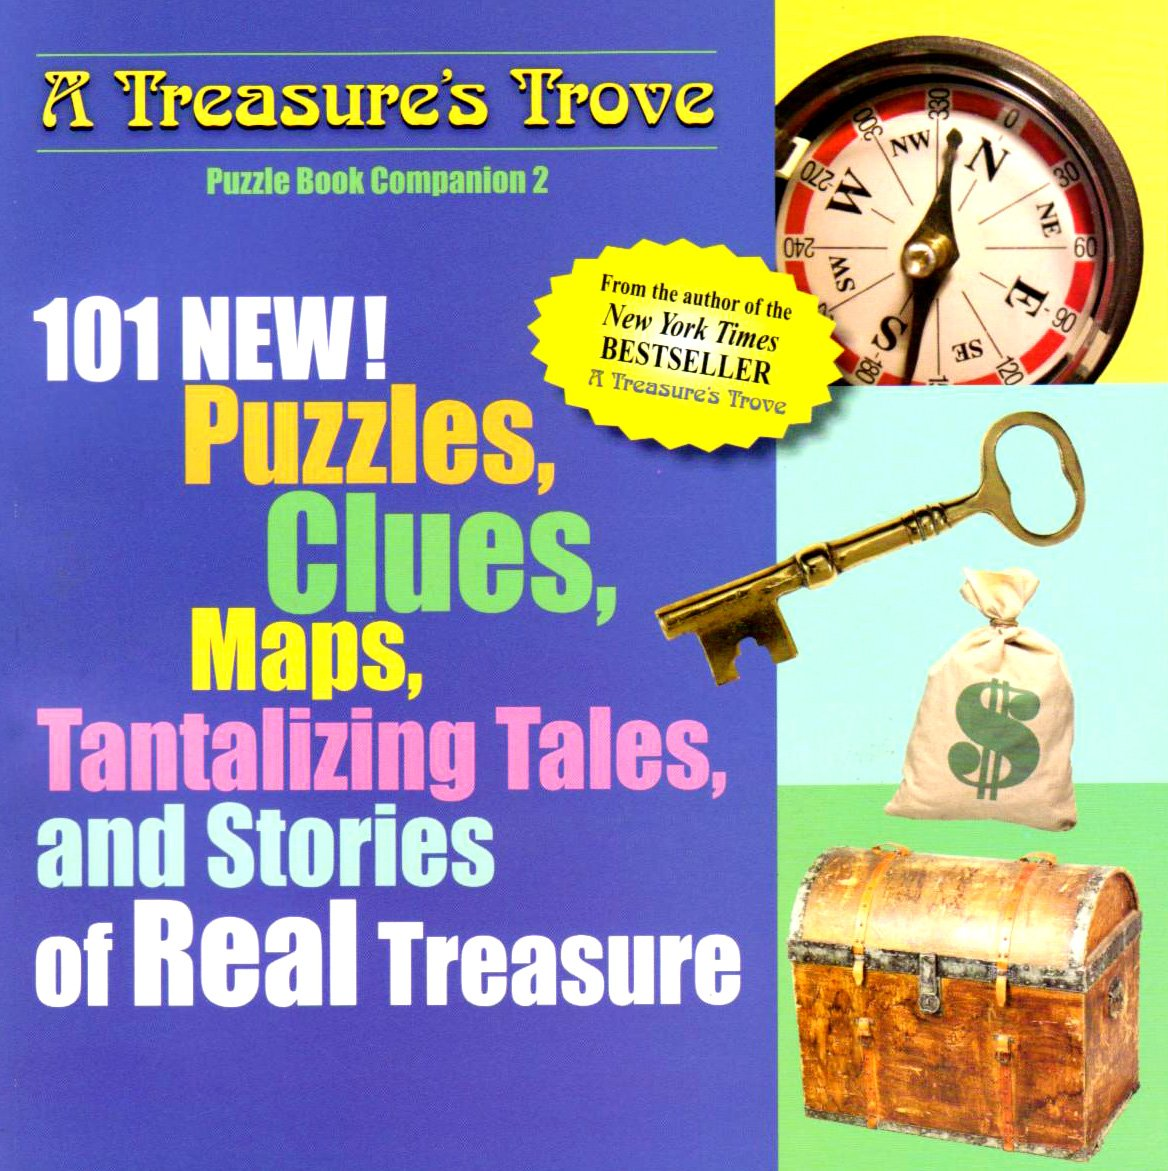 101 New Puzzles, Clues, Maps, Tantalizing Tales: And Stories of Real  Treasure (A Treasure's Trove): Michael Stadther: 9781416926559: Amazon.com:  Books